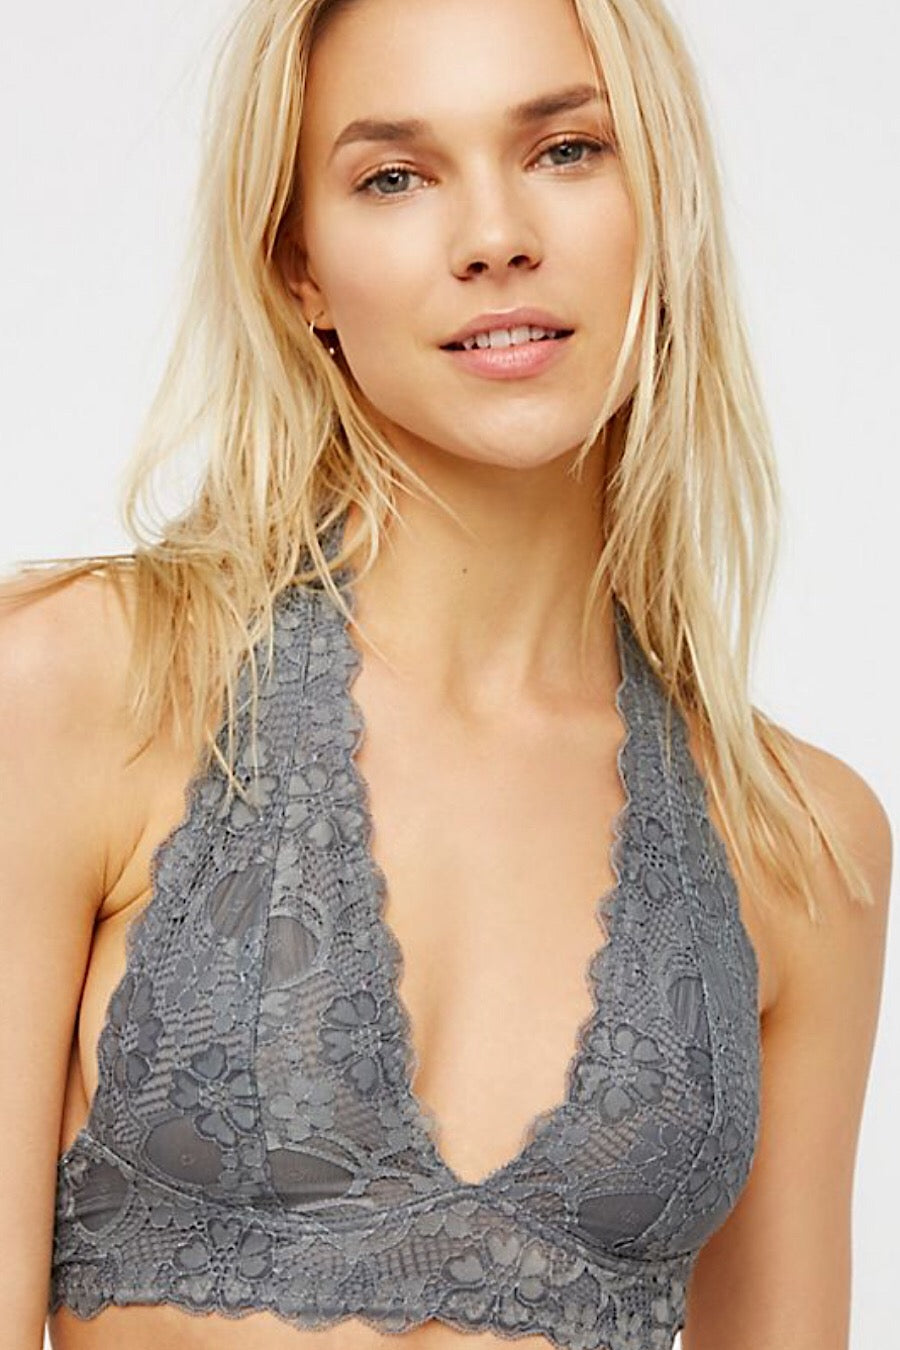 Free People Lace Halter Bralette in Graphite, Nude, Navy or Ivory